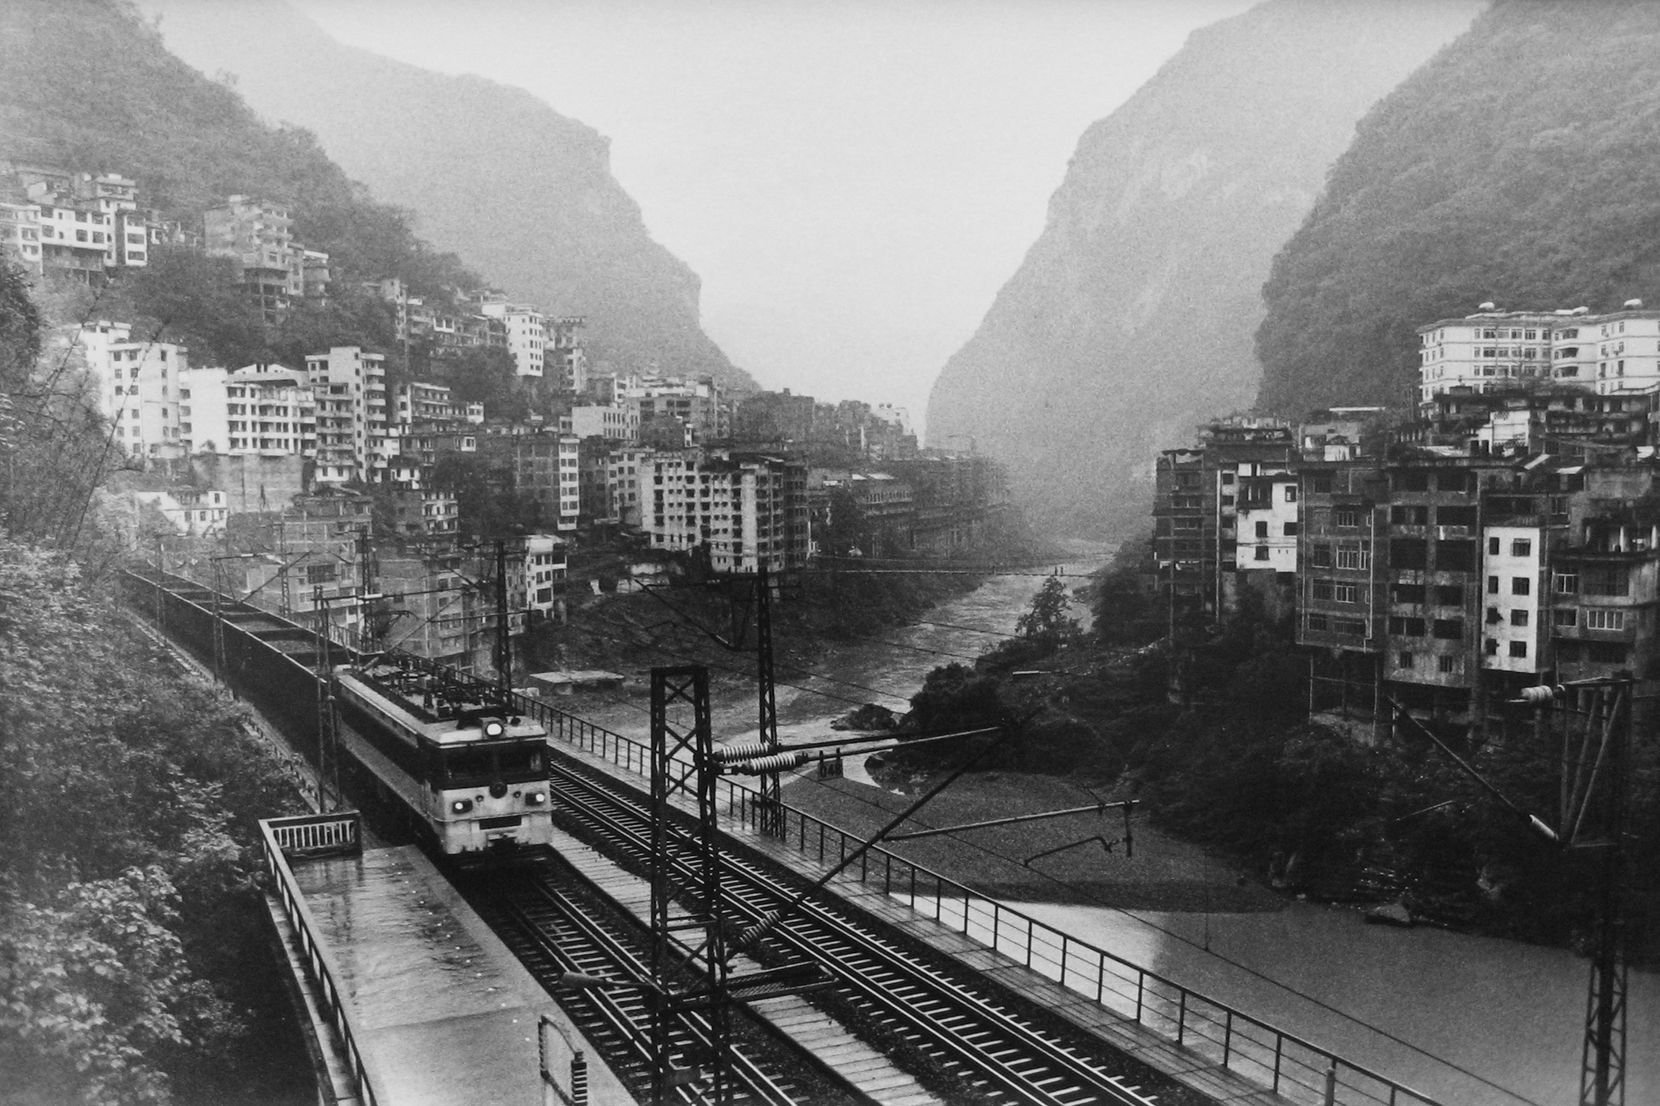 The Neijiang Kunming Railroad Extending Through the County Town Underground, Yanjin, 2007